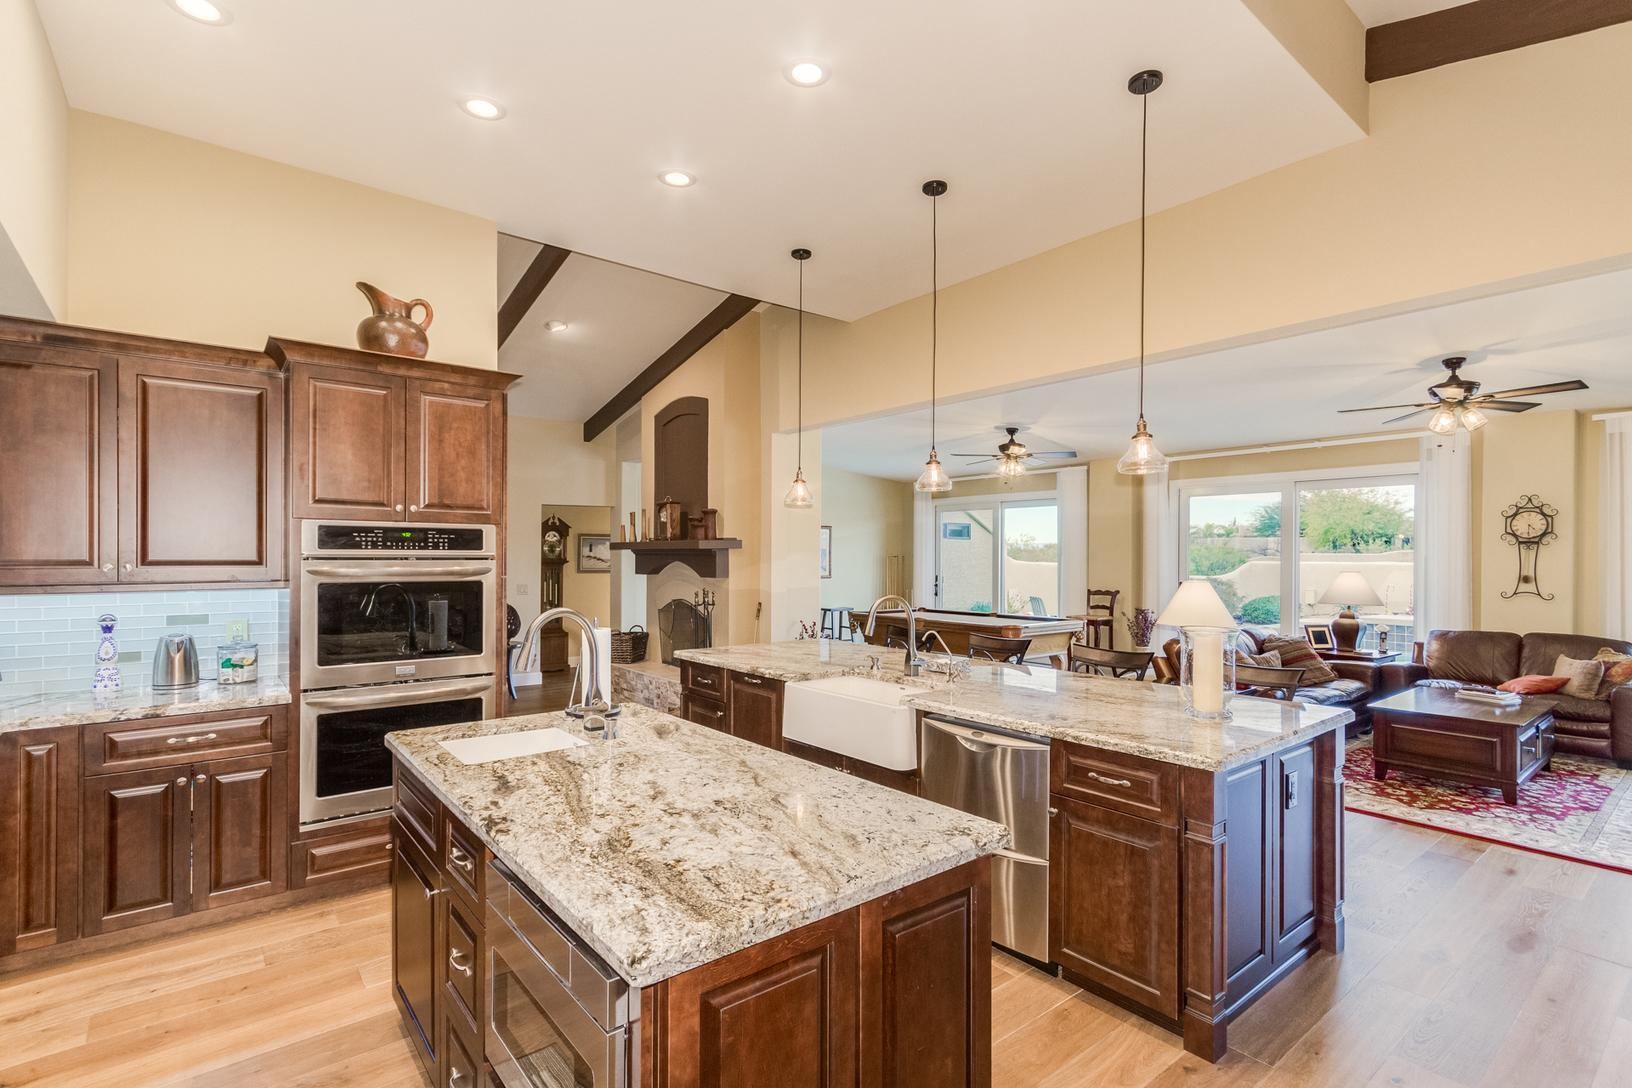 Whole Home Remodel in Scottsdale Grayhawk